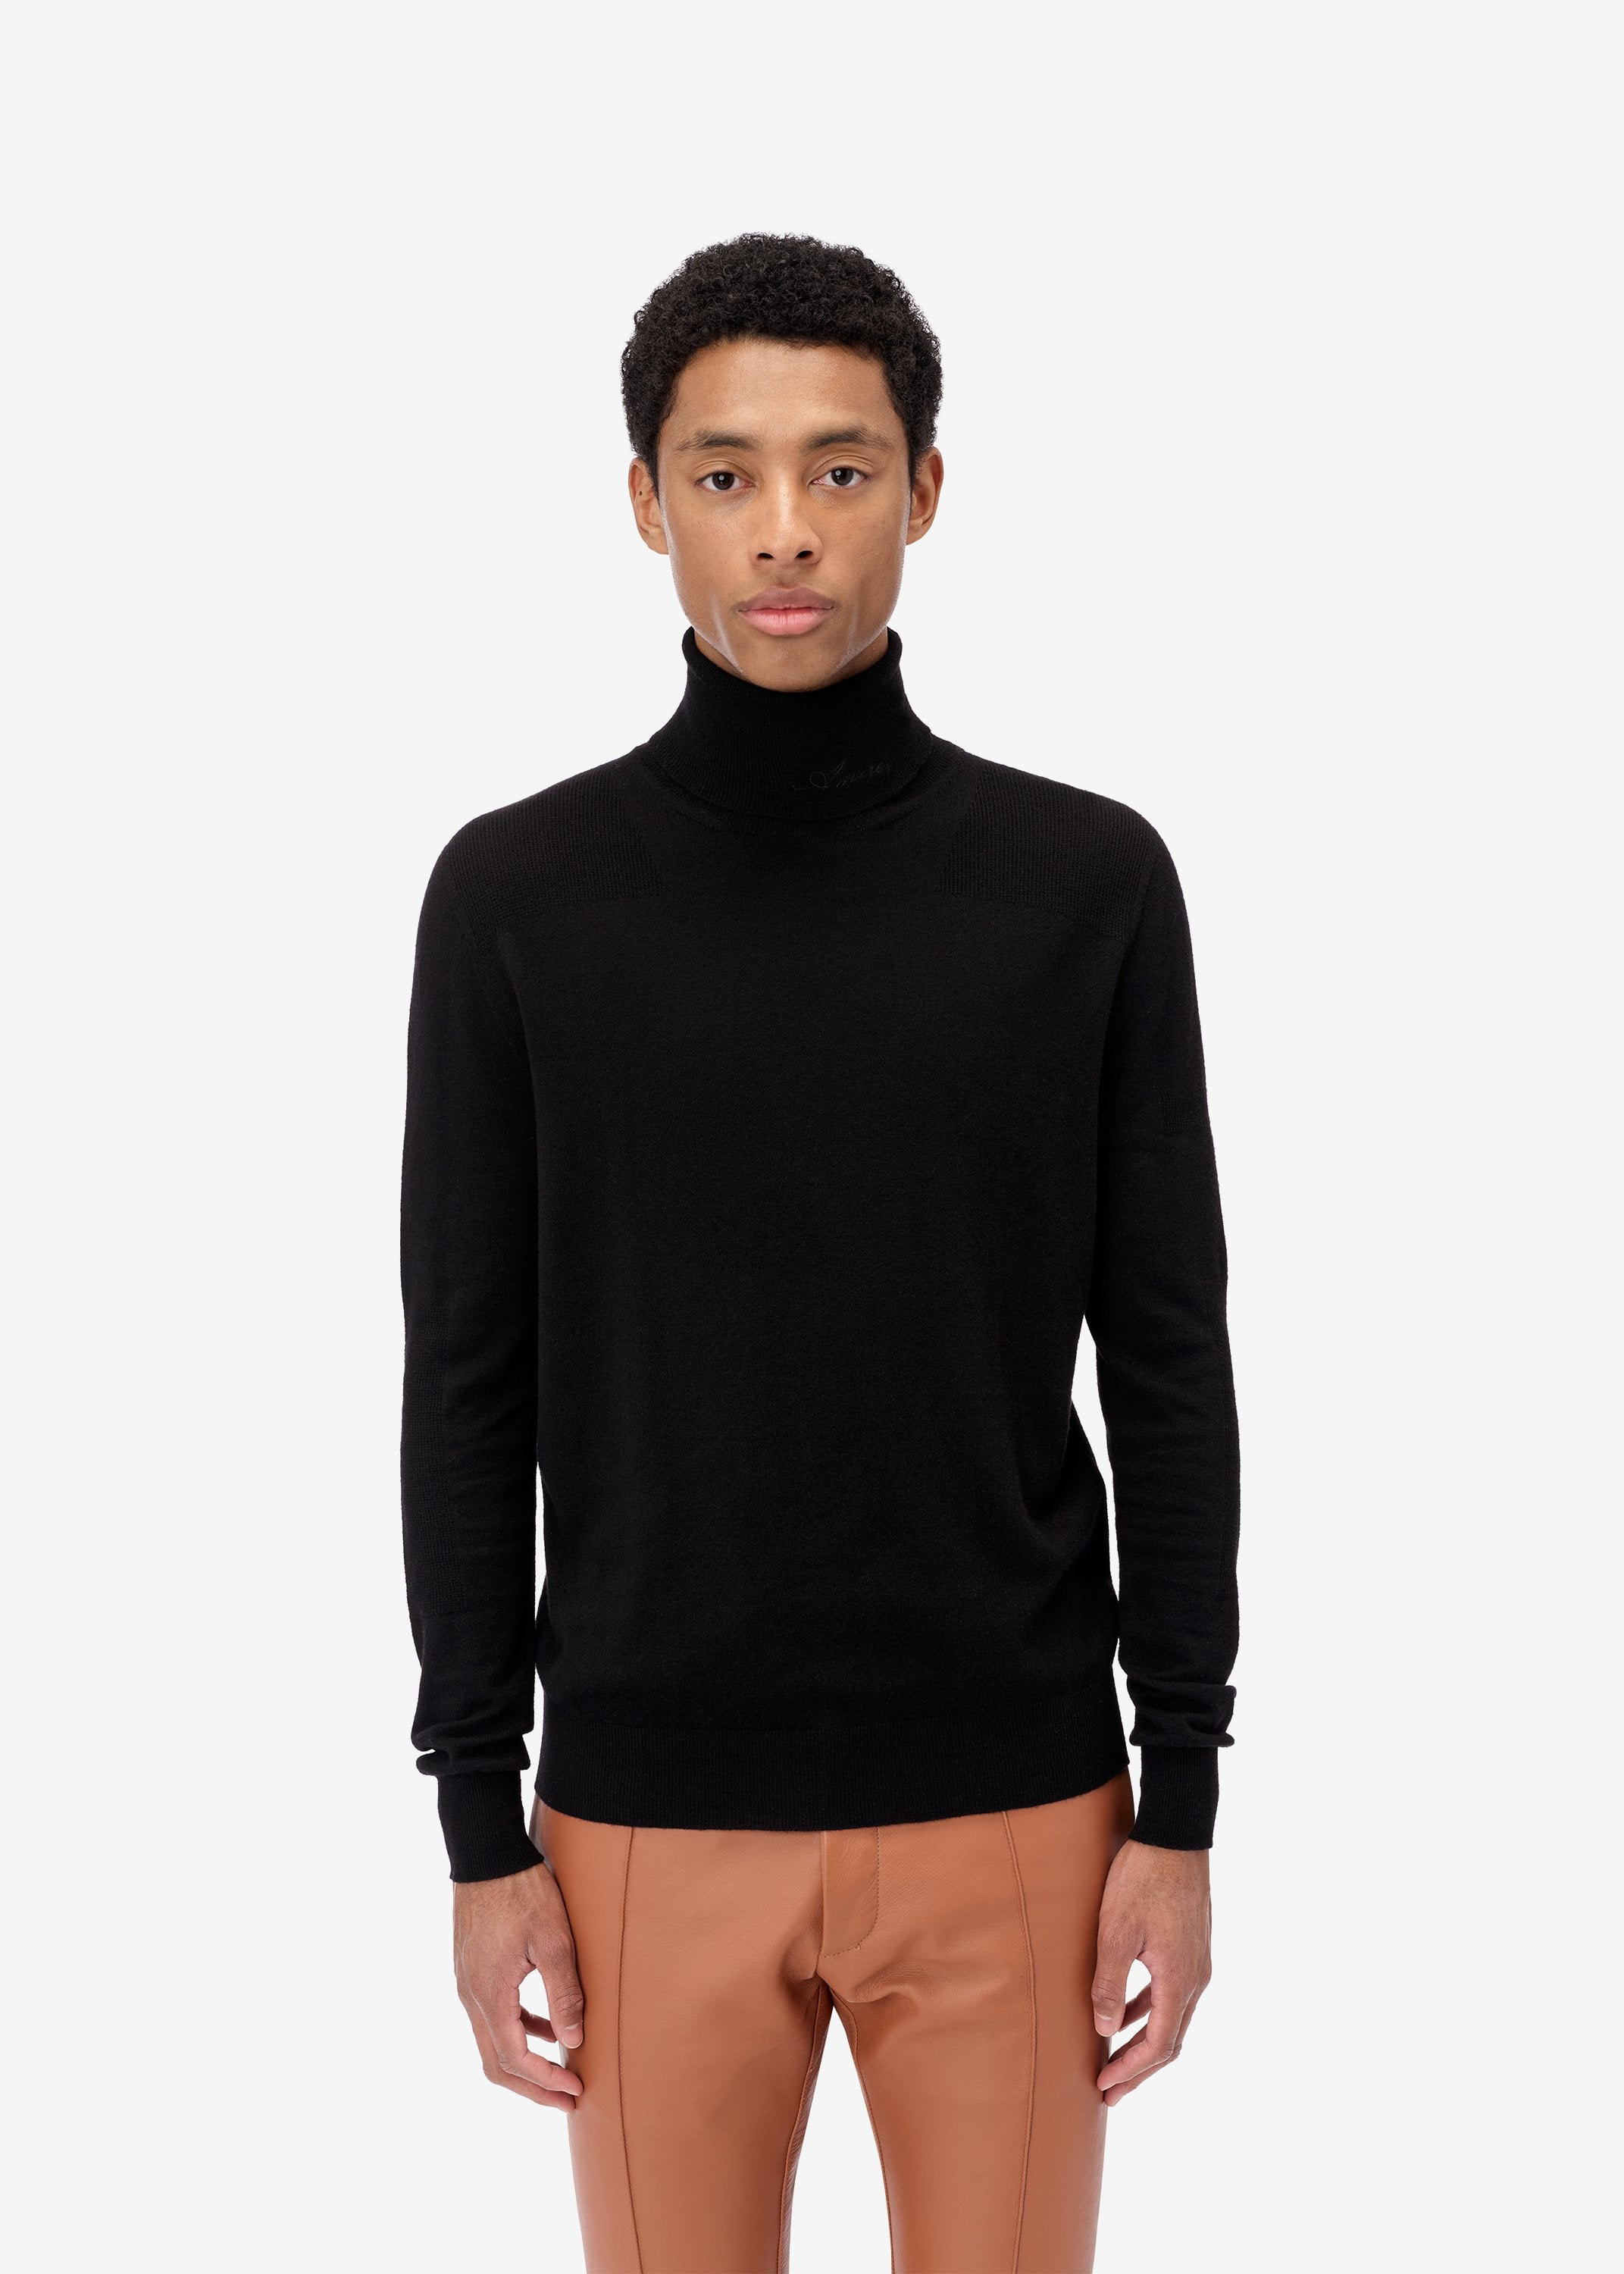 fitted-wool-turtleneck-black-image-1